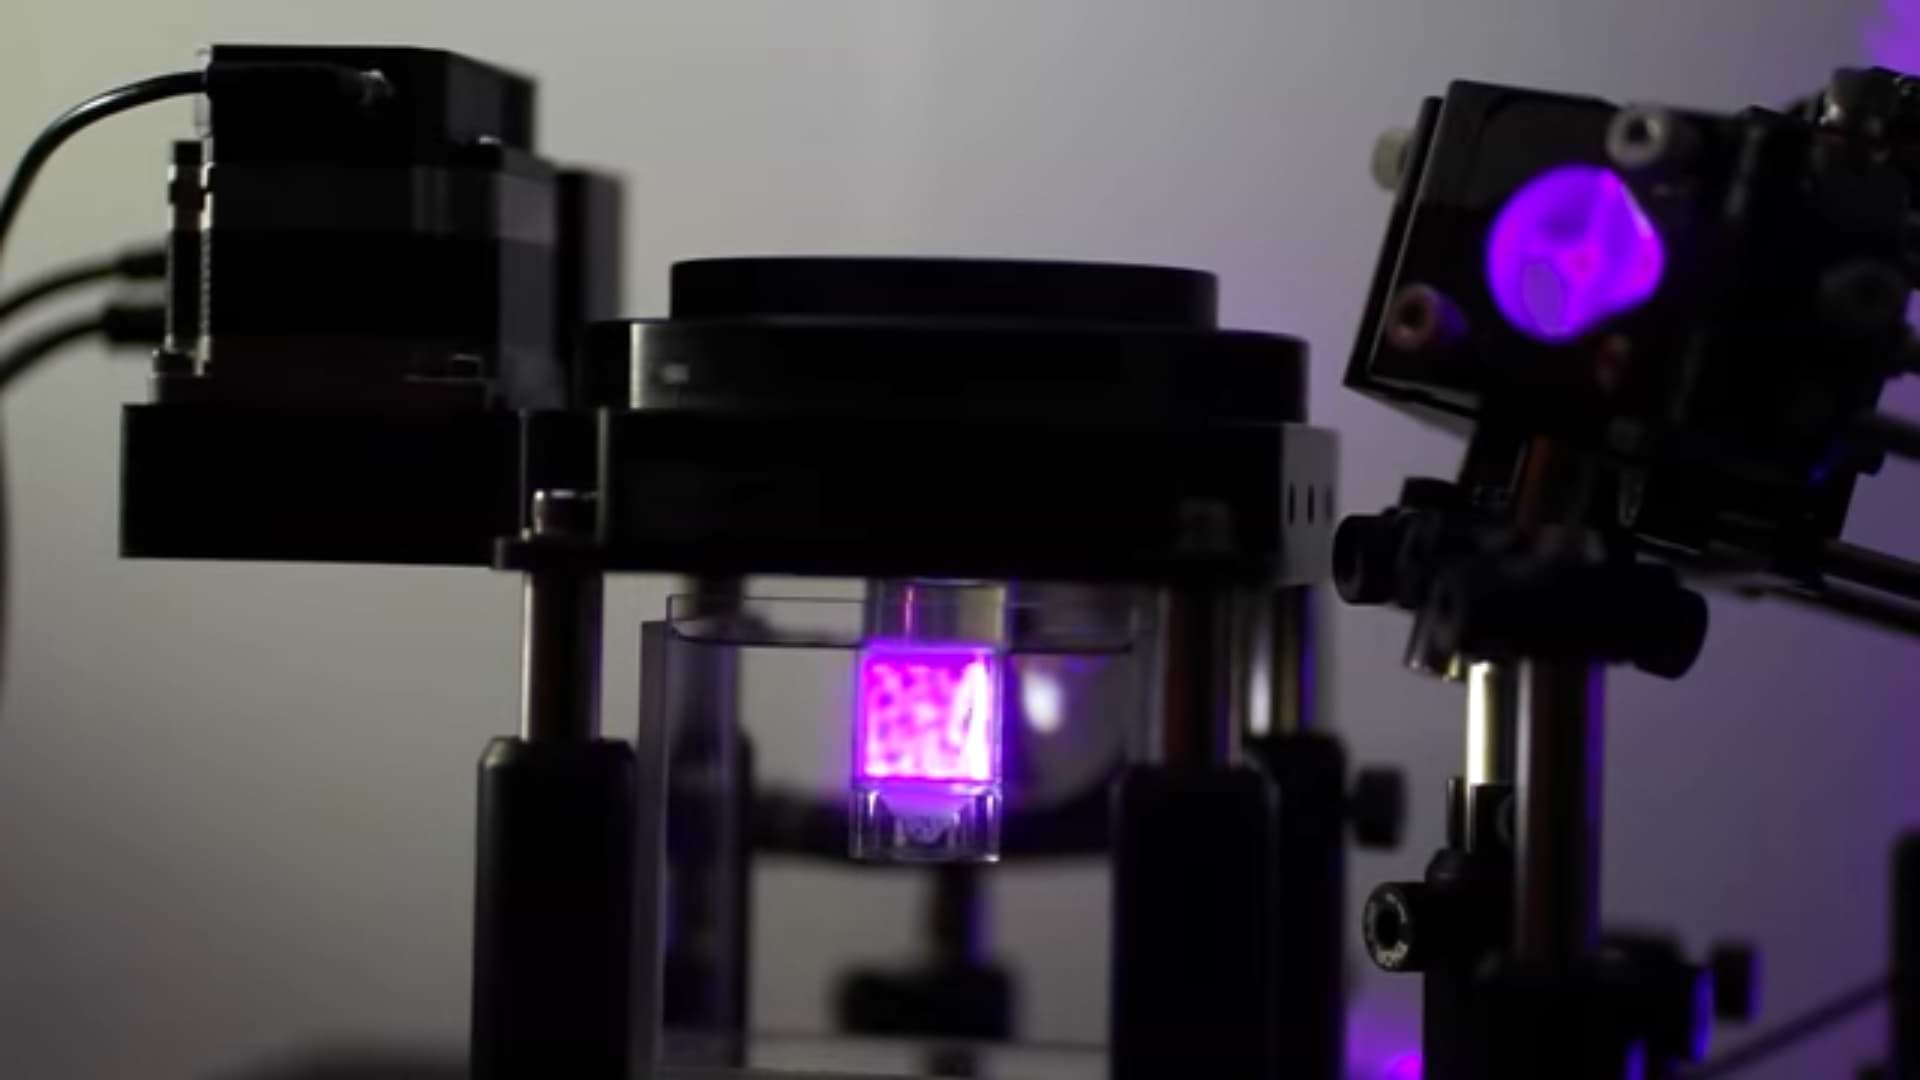 Researchers Develop A New Highly-Precise, Extremely Fast 3D Printing Process